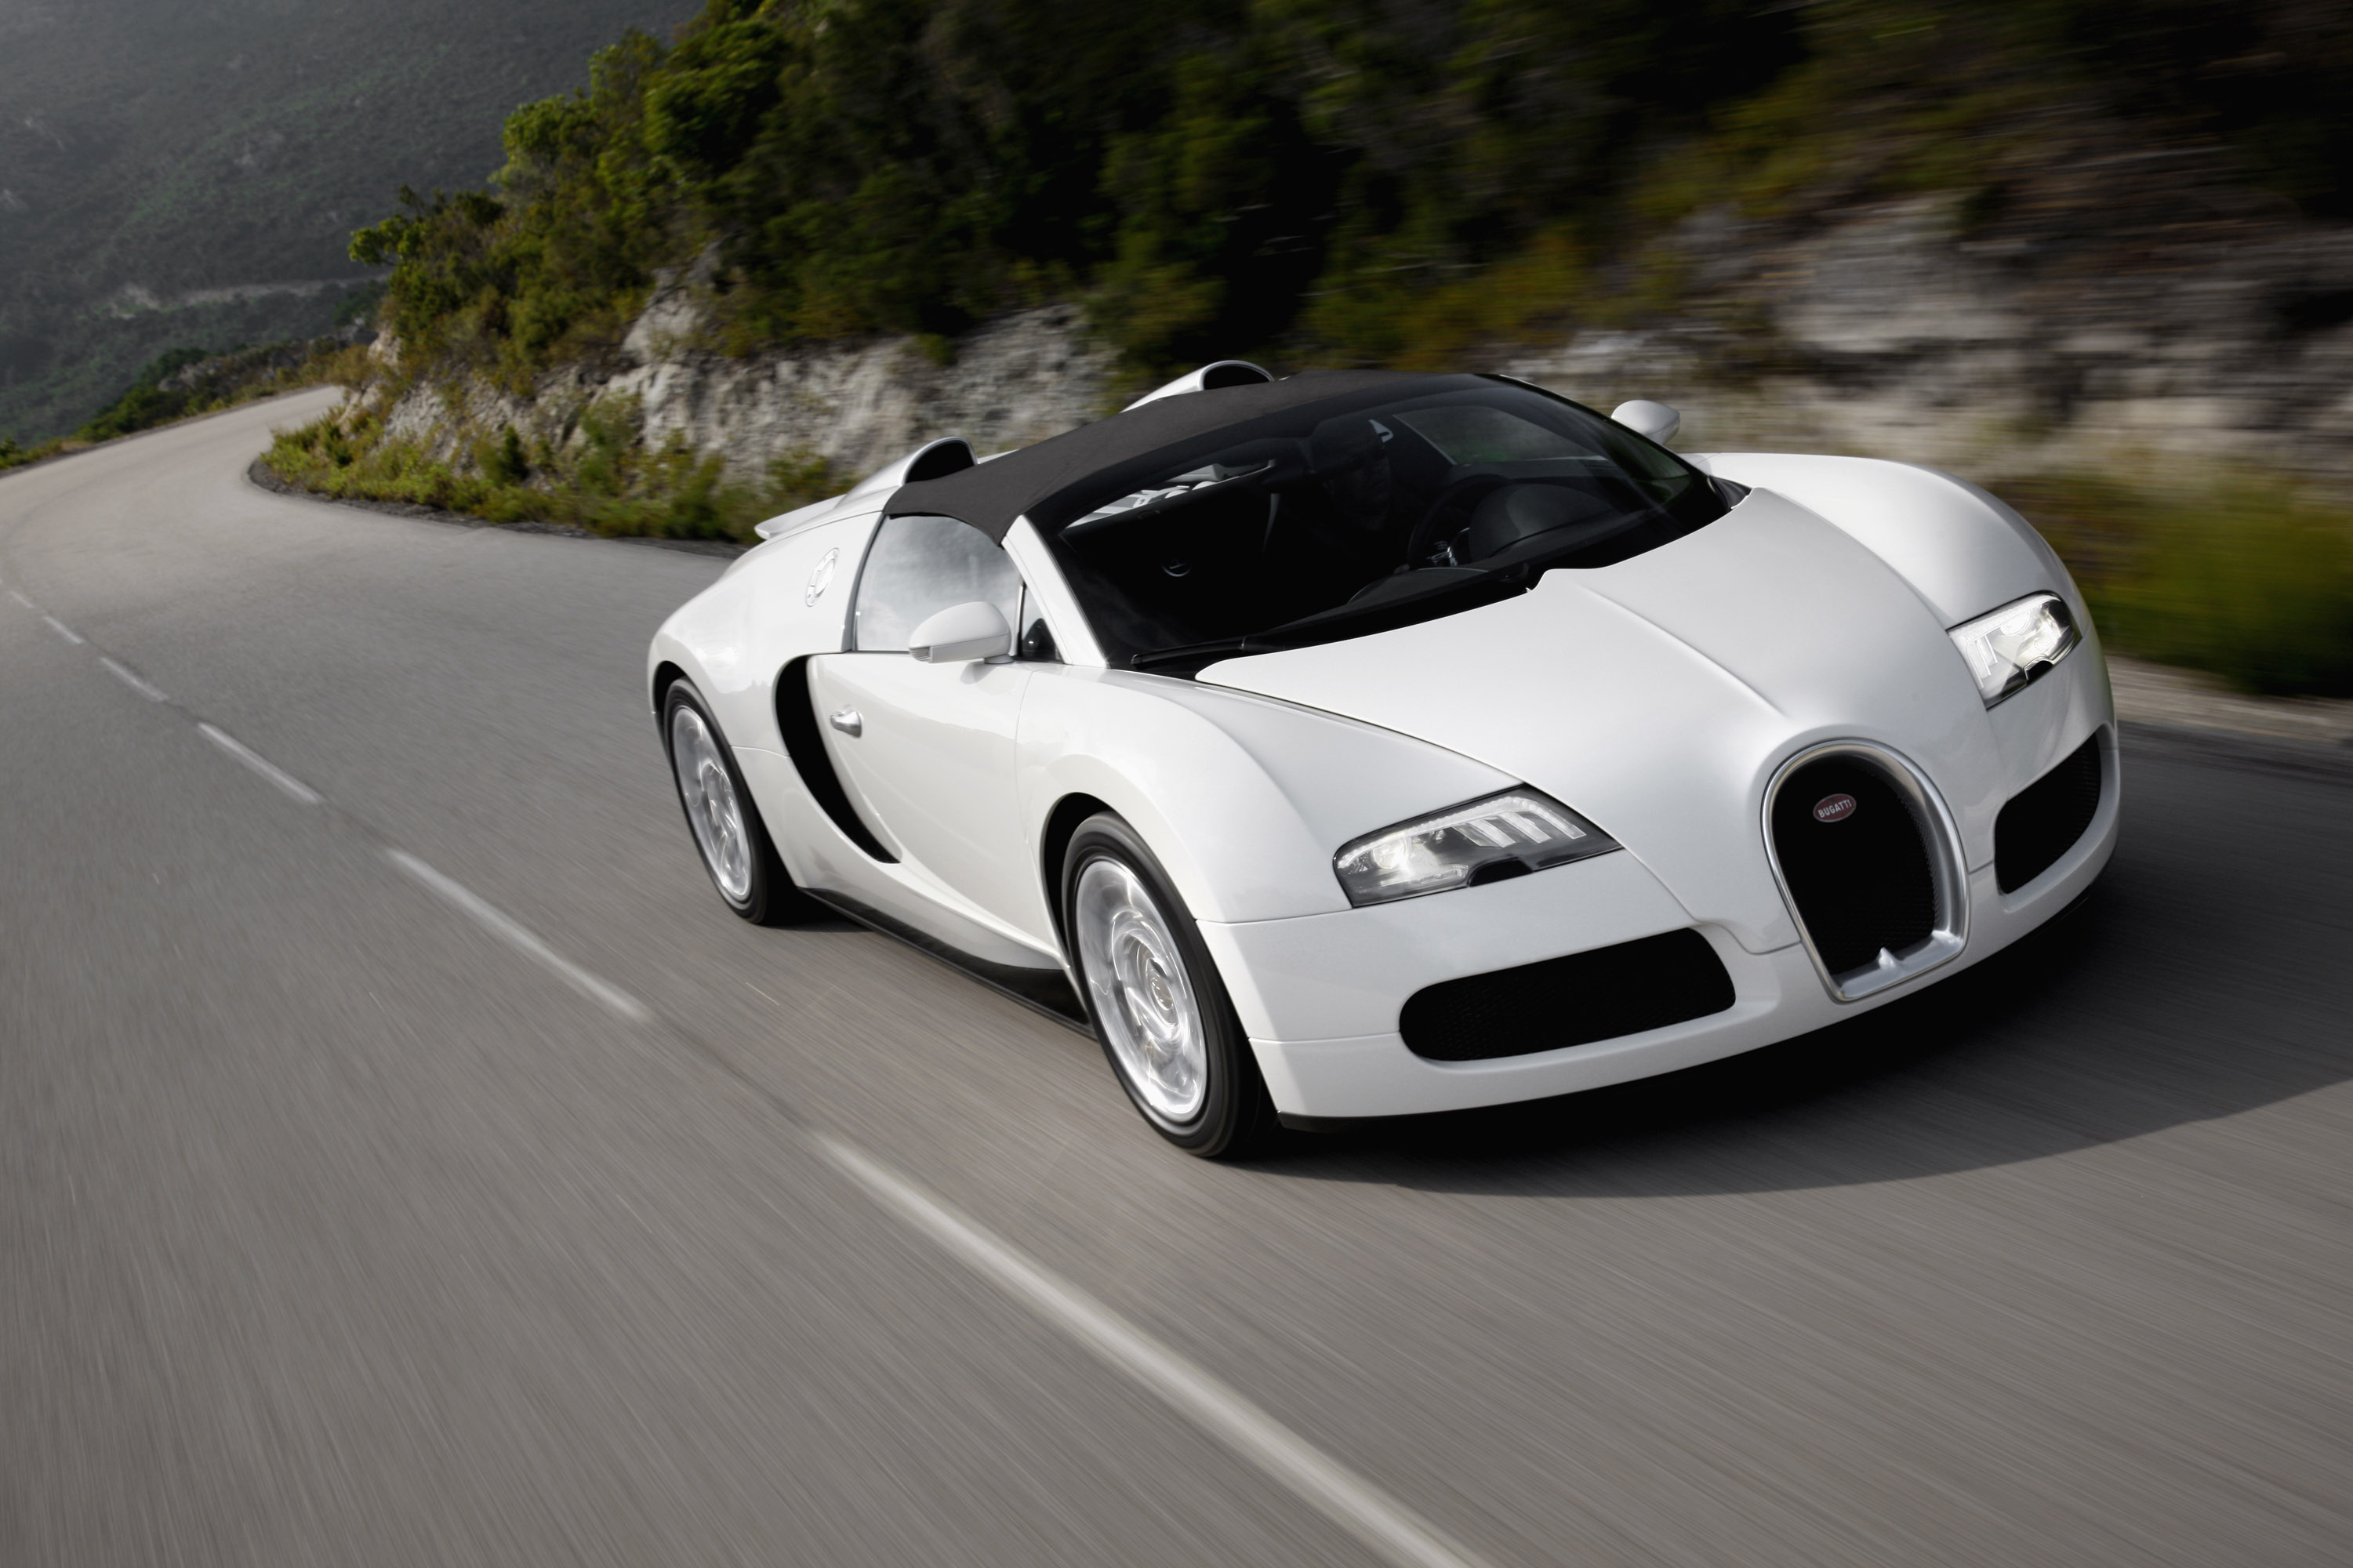 bugatti-veyron-164-grand-sport-04 Exciting Bugatti Veyron Cost for Oil Change Cars Trend